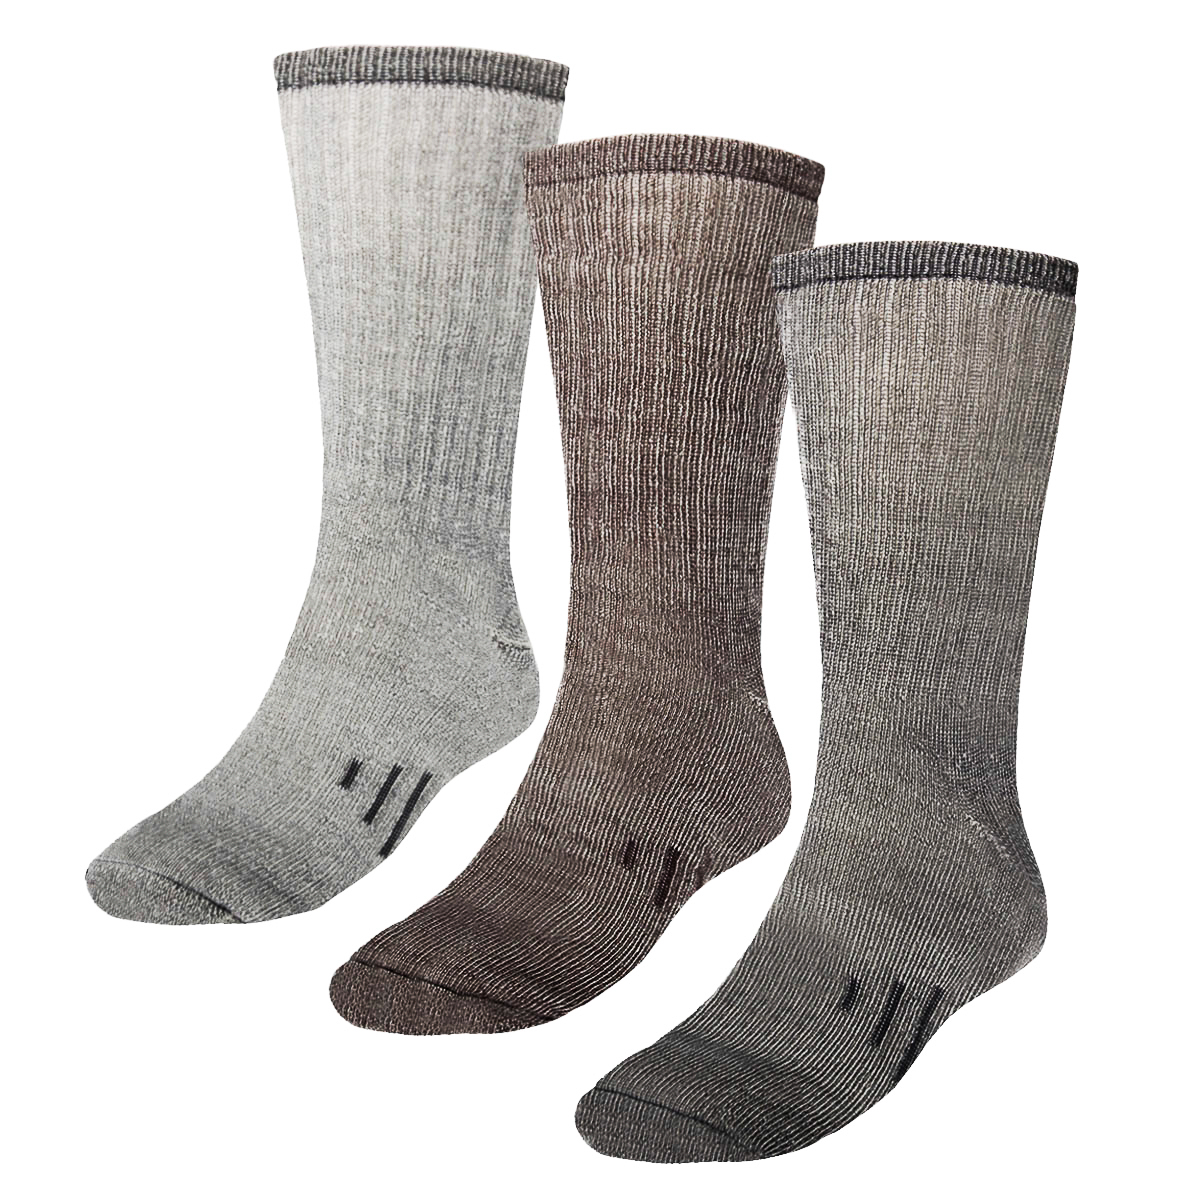 3 Pairs Thermal 80% Merino Wool Socks Hiking Crew Winter Mens Womens Kid's